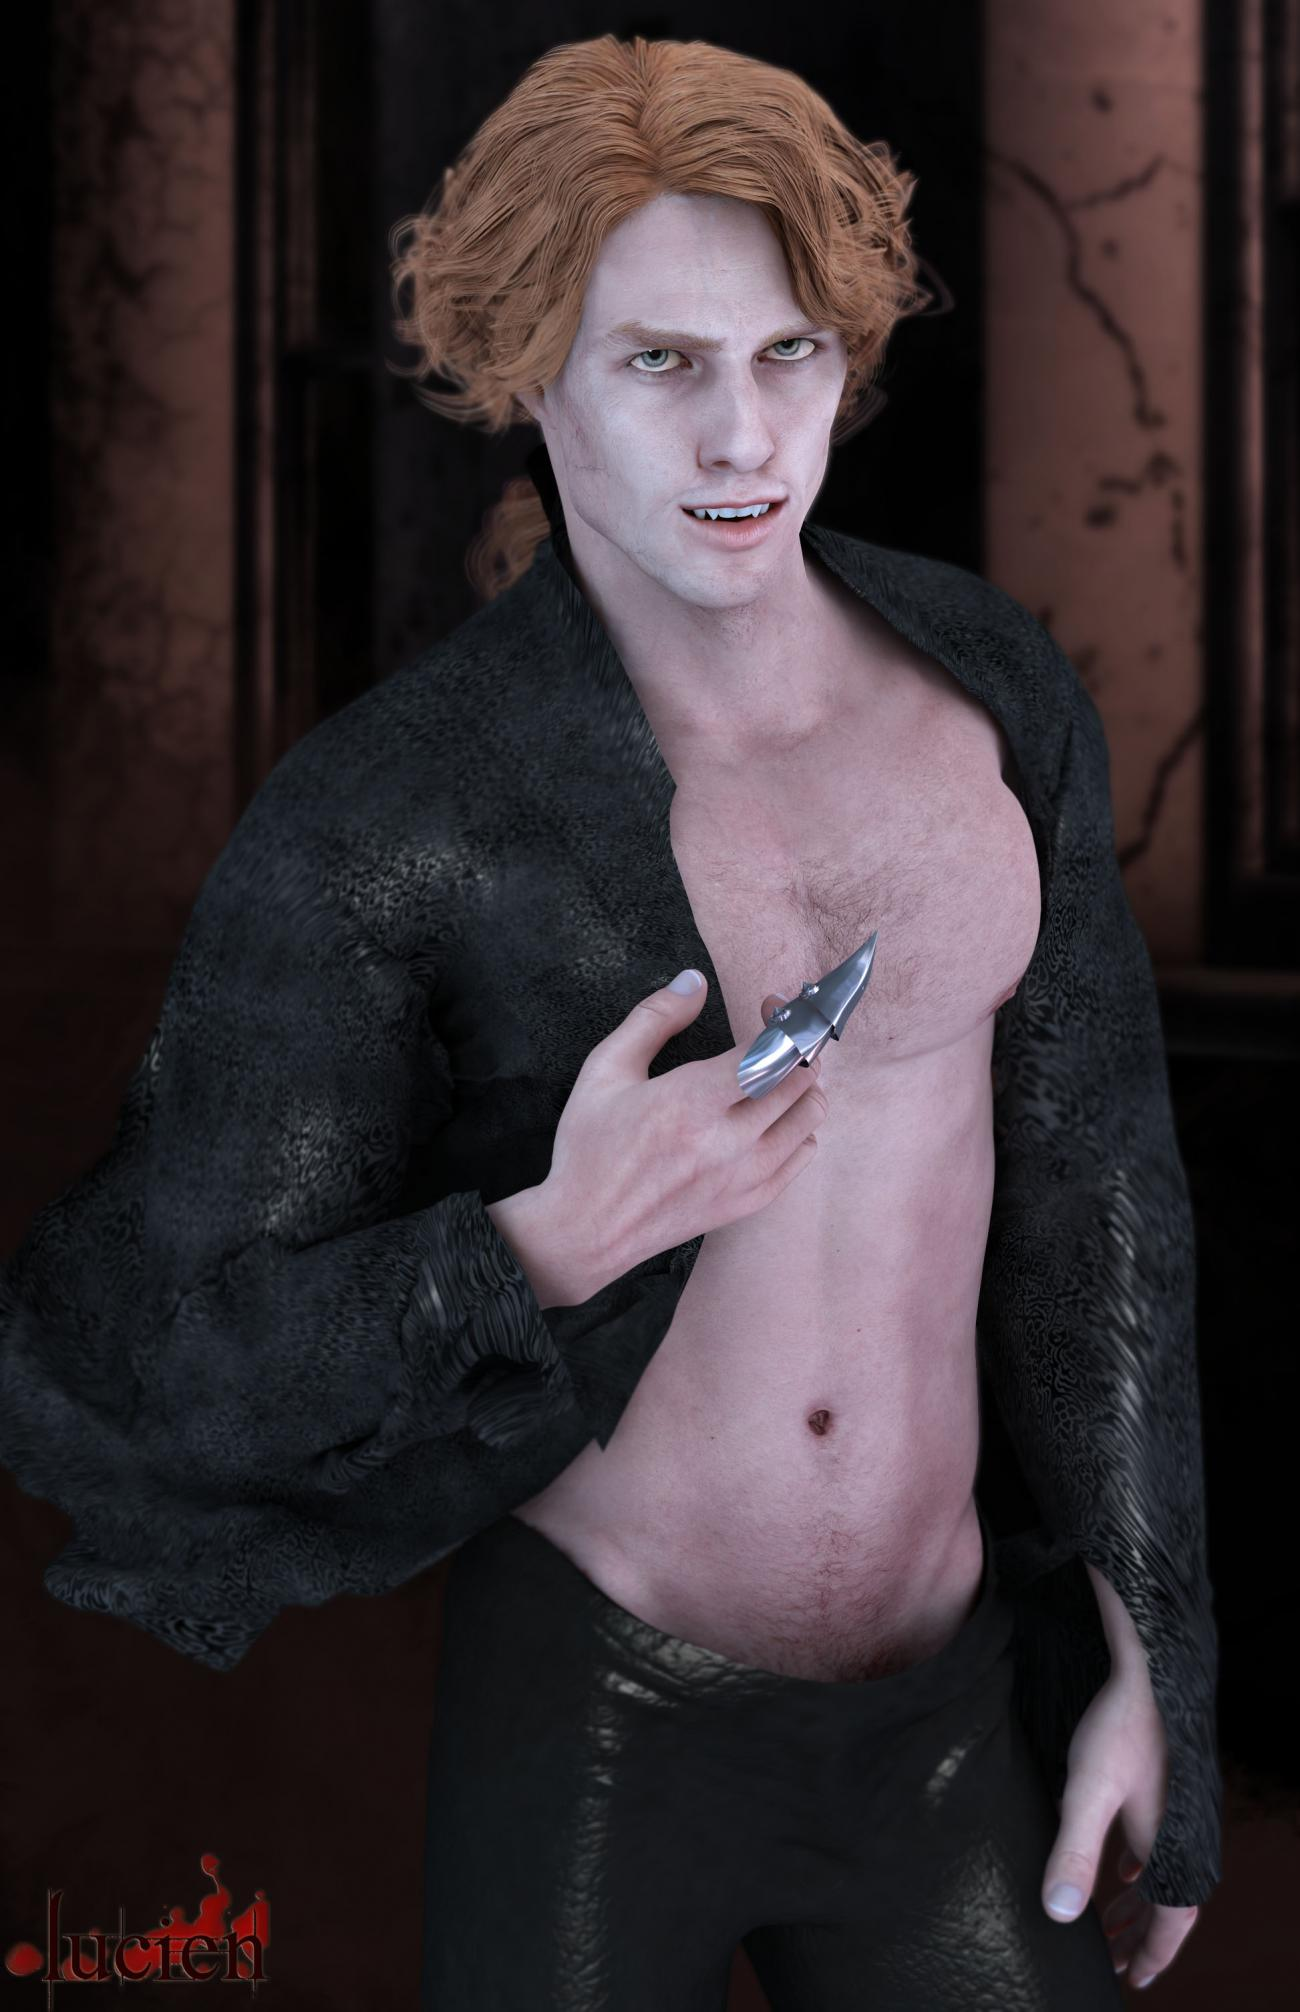 Lucien ... a new vampire in town ...